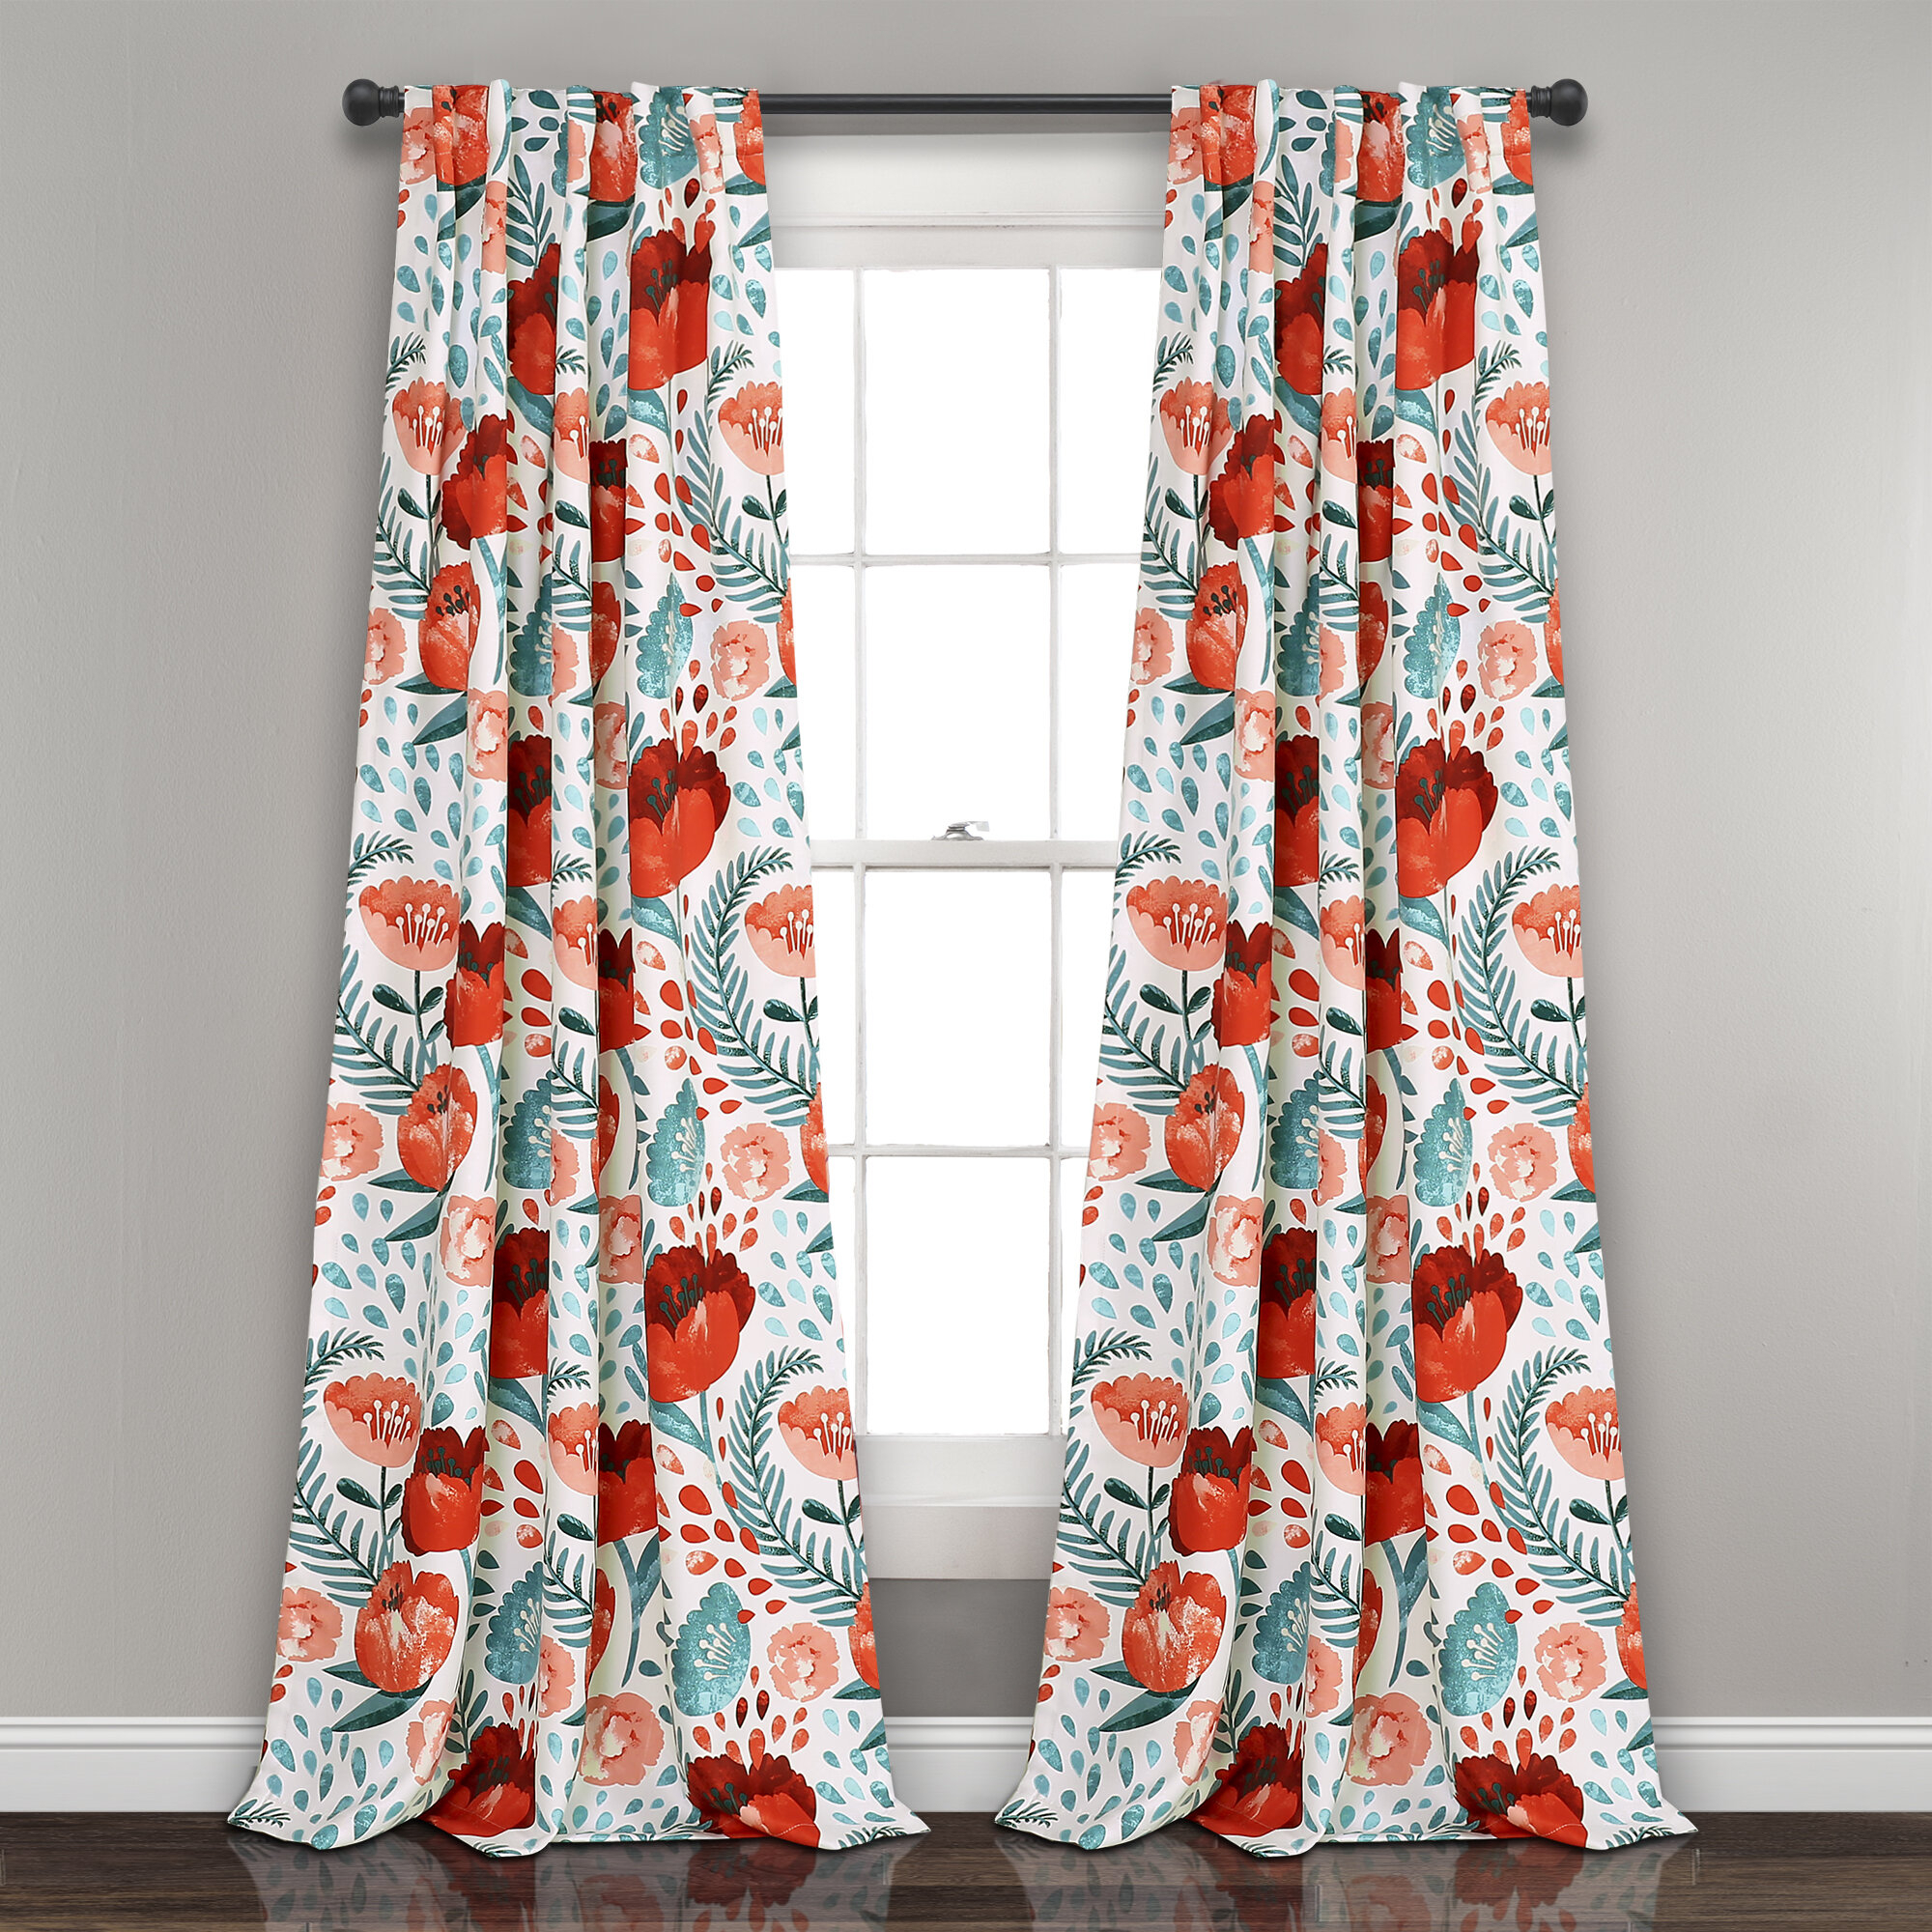 Bryonhall Poppy Garden Floral Room Darkening Thermal Rod Pocket Curtain  Panels with Floral Pattern Room Darkening Window Curtain Panel Pairs (Image 3 of 20)